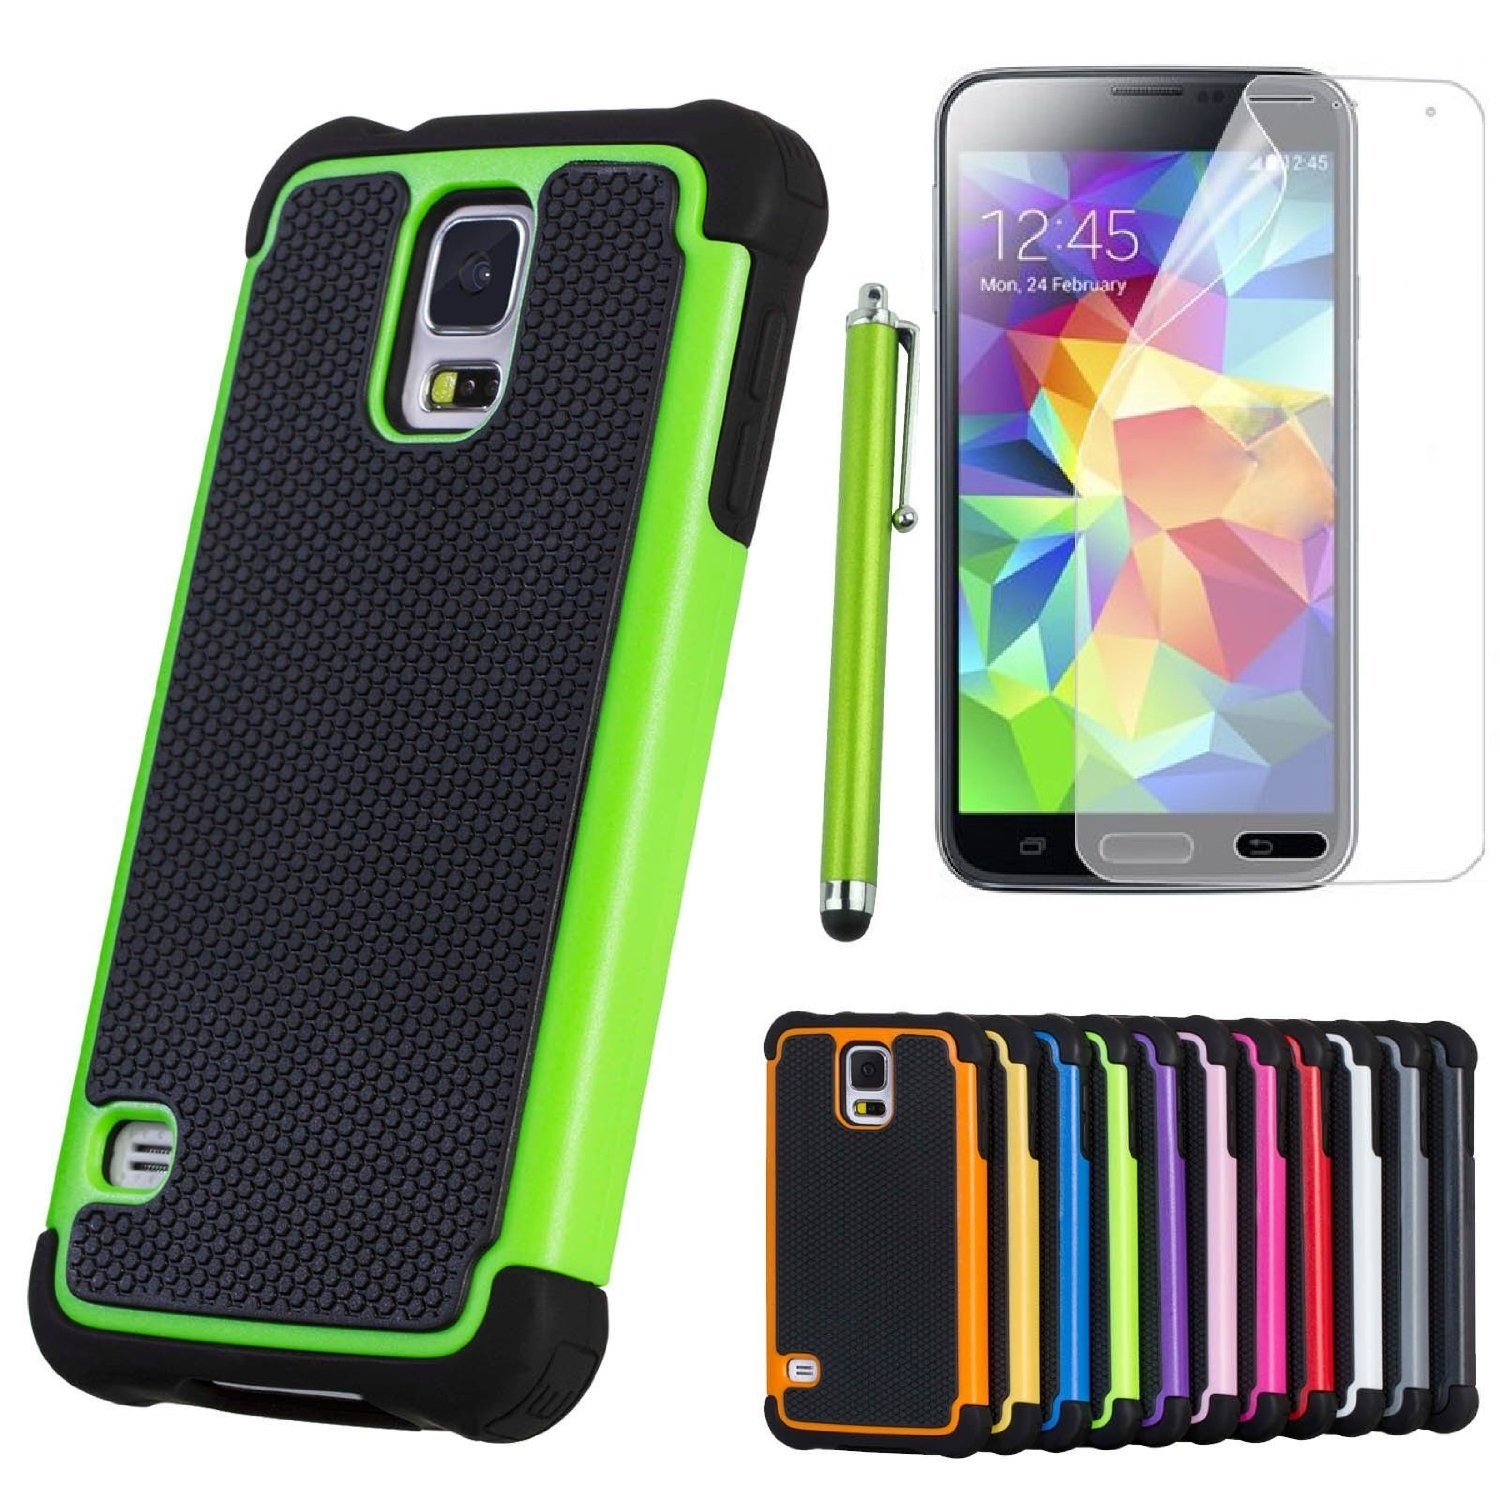 ShopNY Case -Heavy Duty Rugged Cover Case for Samsung Galaxy S5 SV S V Smart Phone (Green)